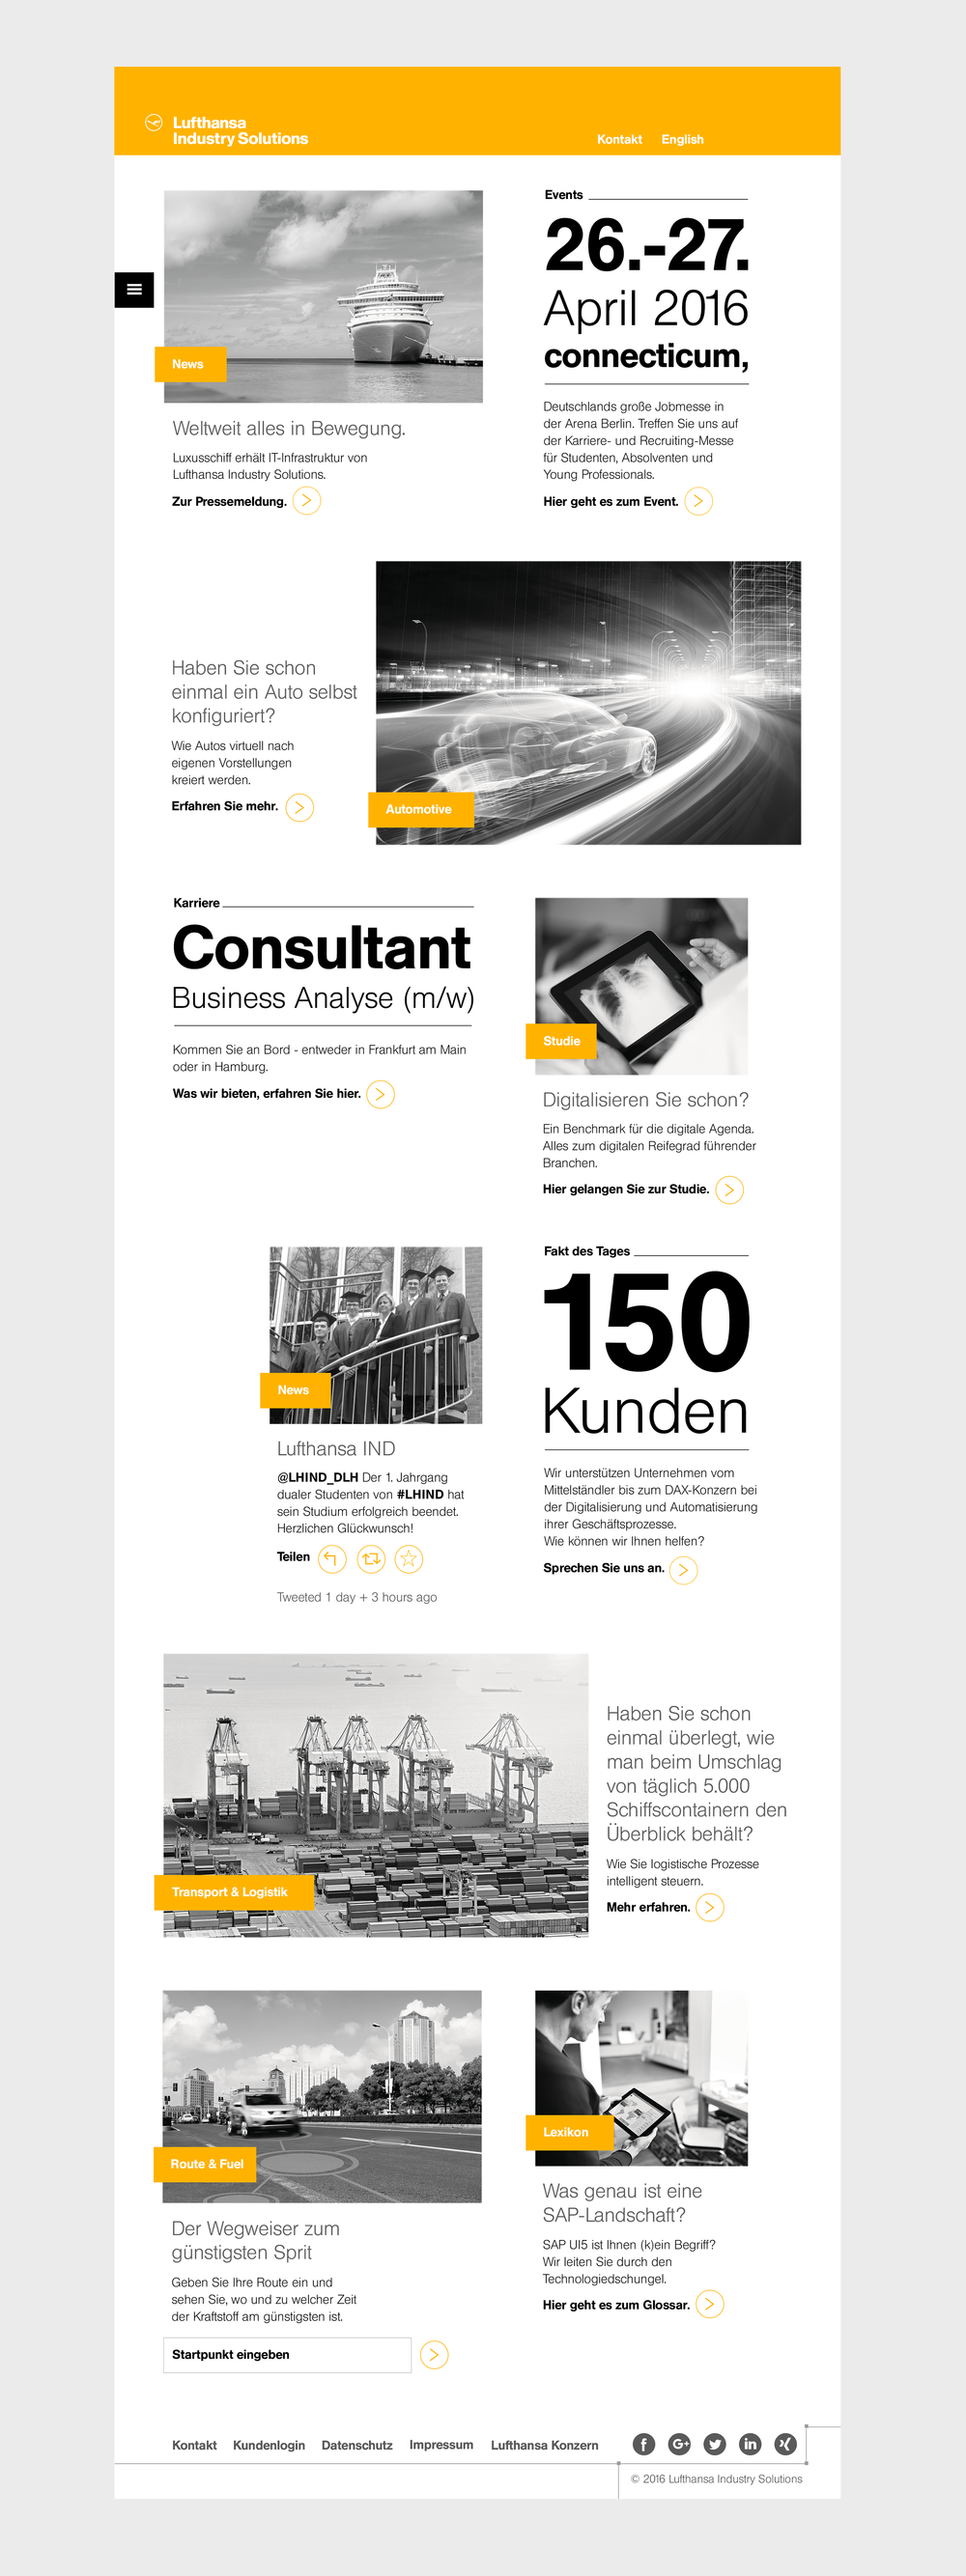 16_05_20_lufthansa_industry_solutions.png